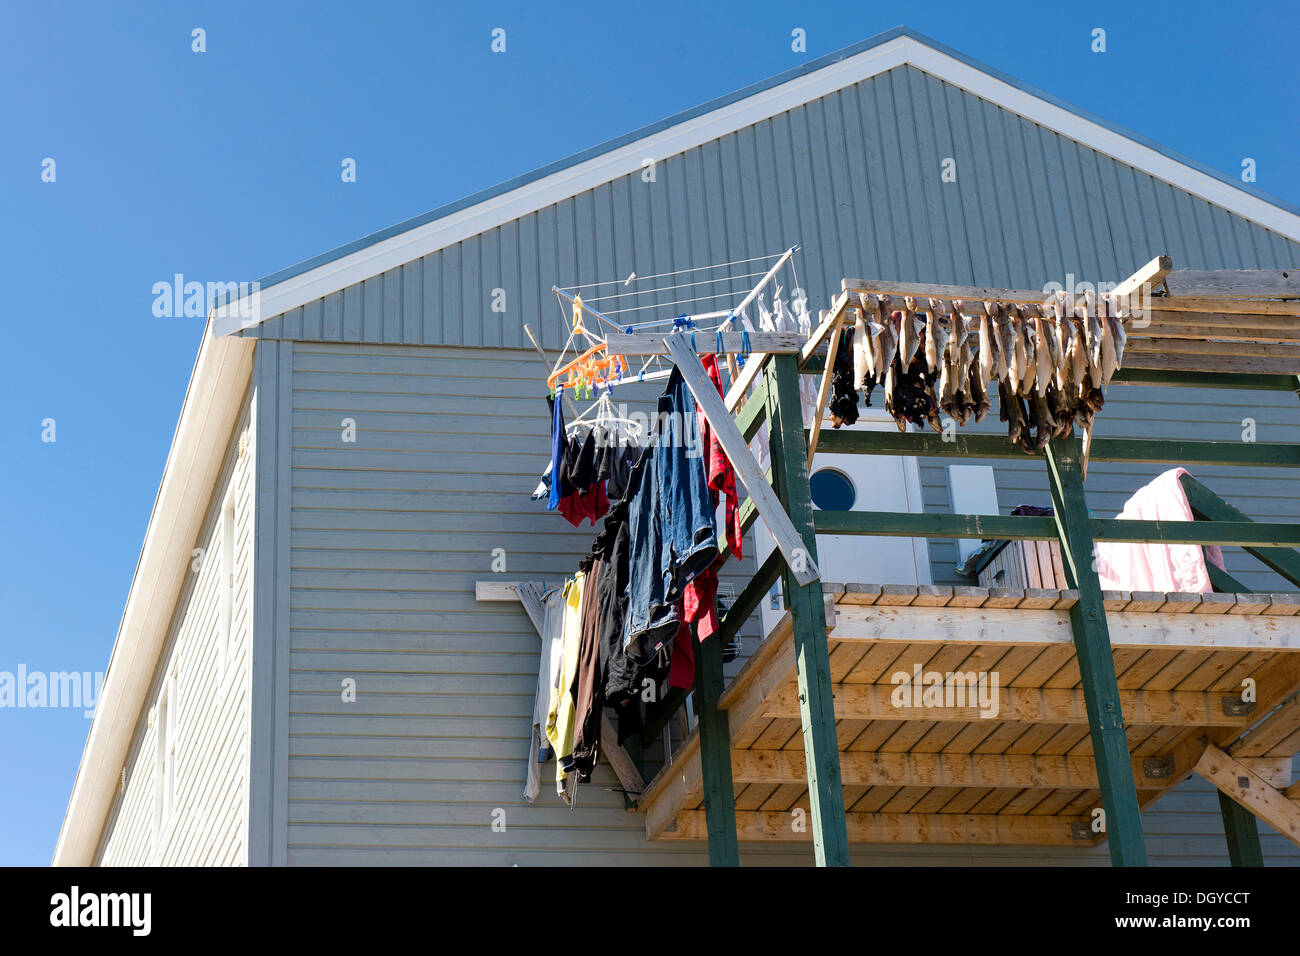 Dried fish and laundry on a balcony, Tasiilaq or Ammassalik, East Greenland, Greenland - Stock Image